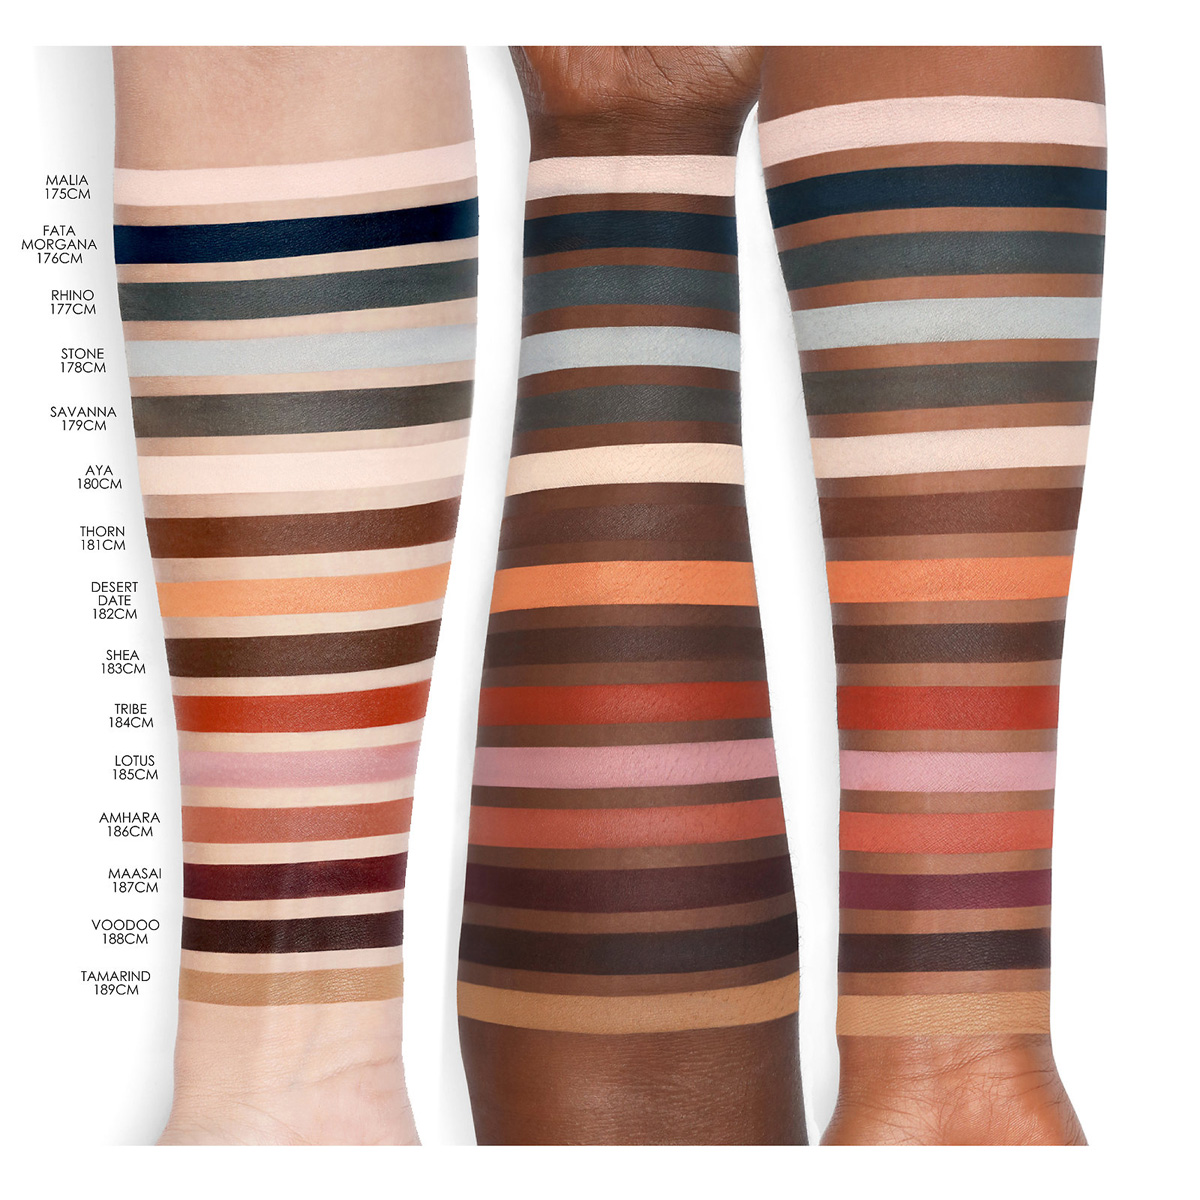 natasha-denona-safari-eyeshadow-palette-swatches